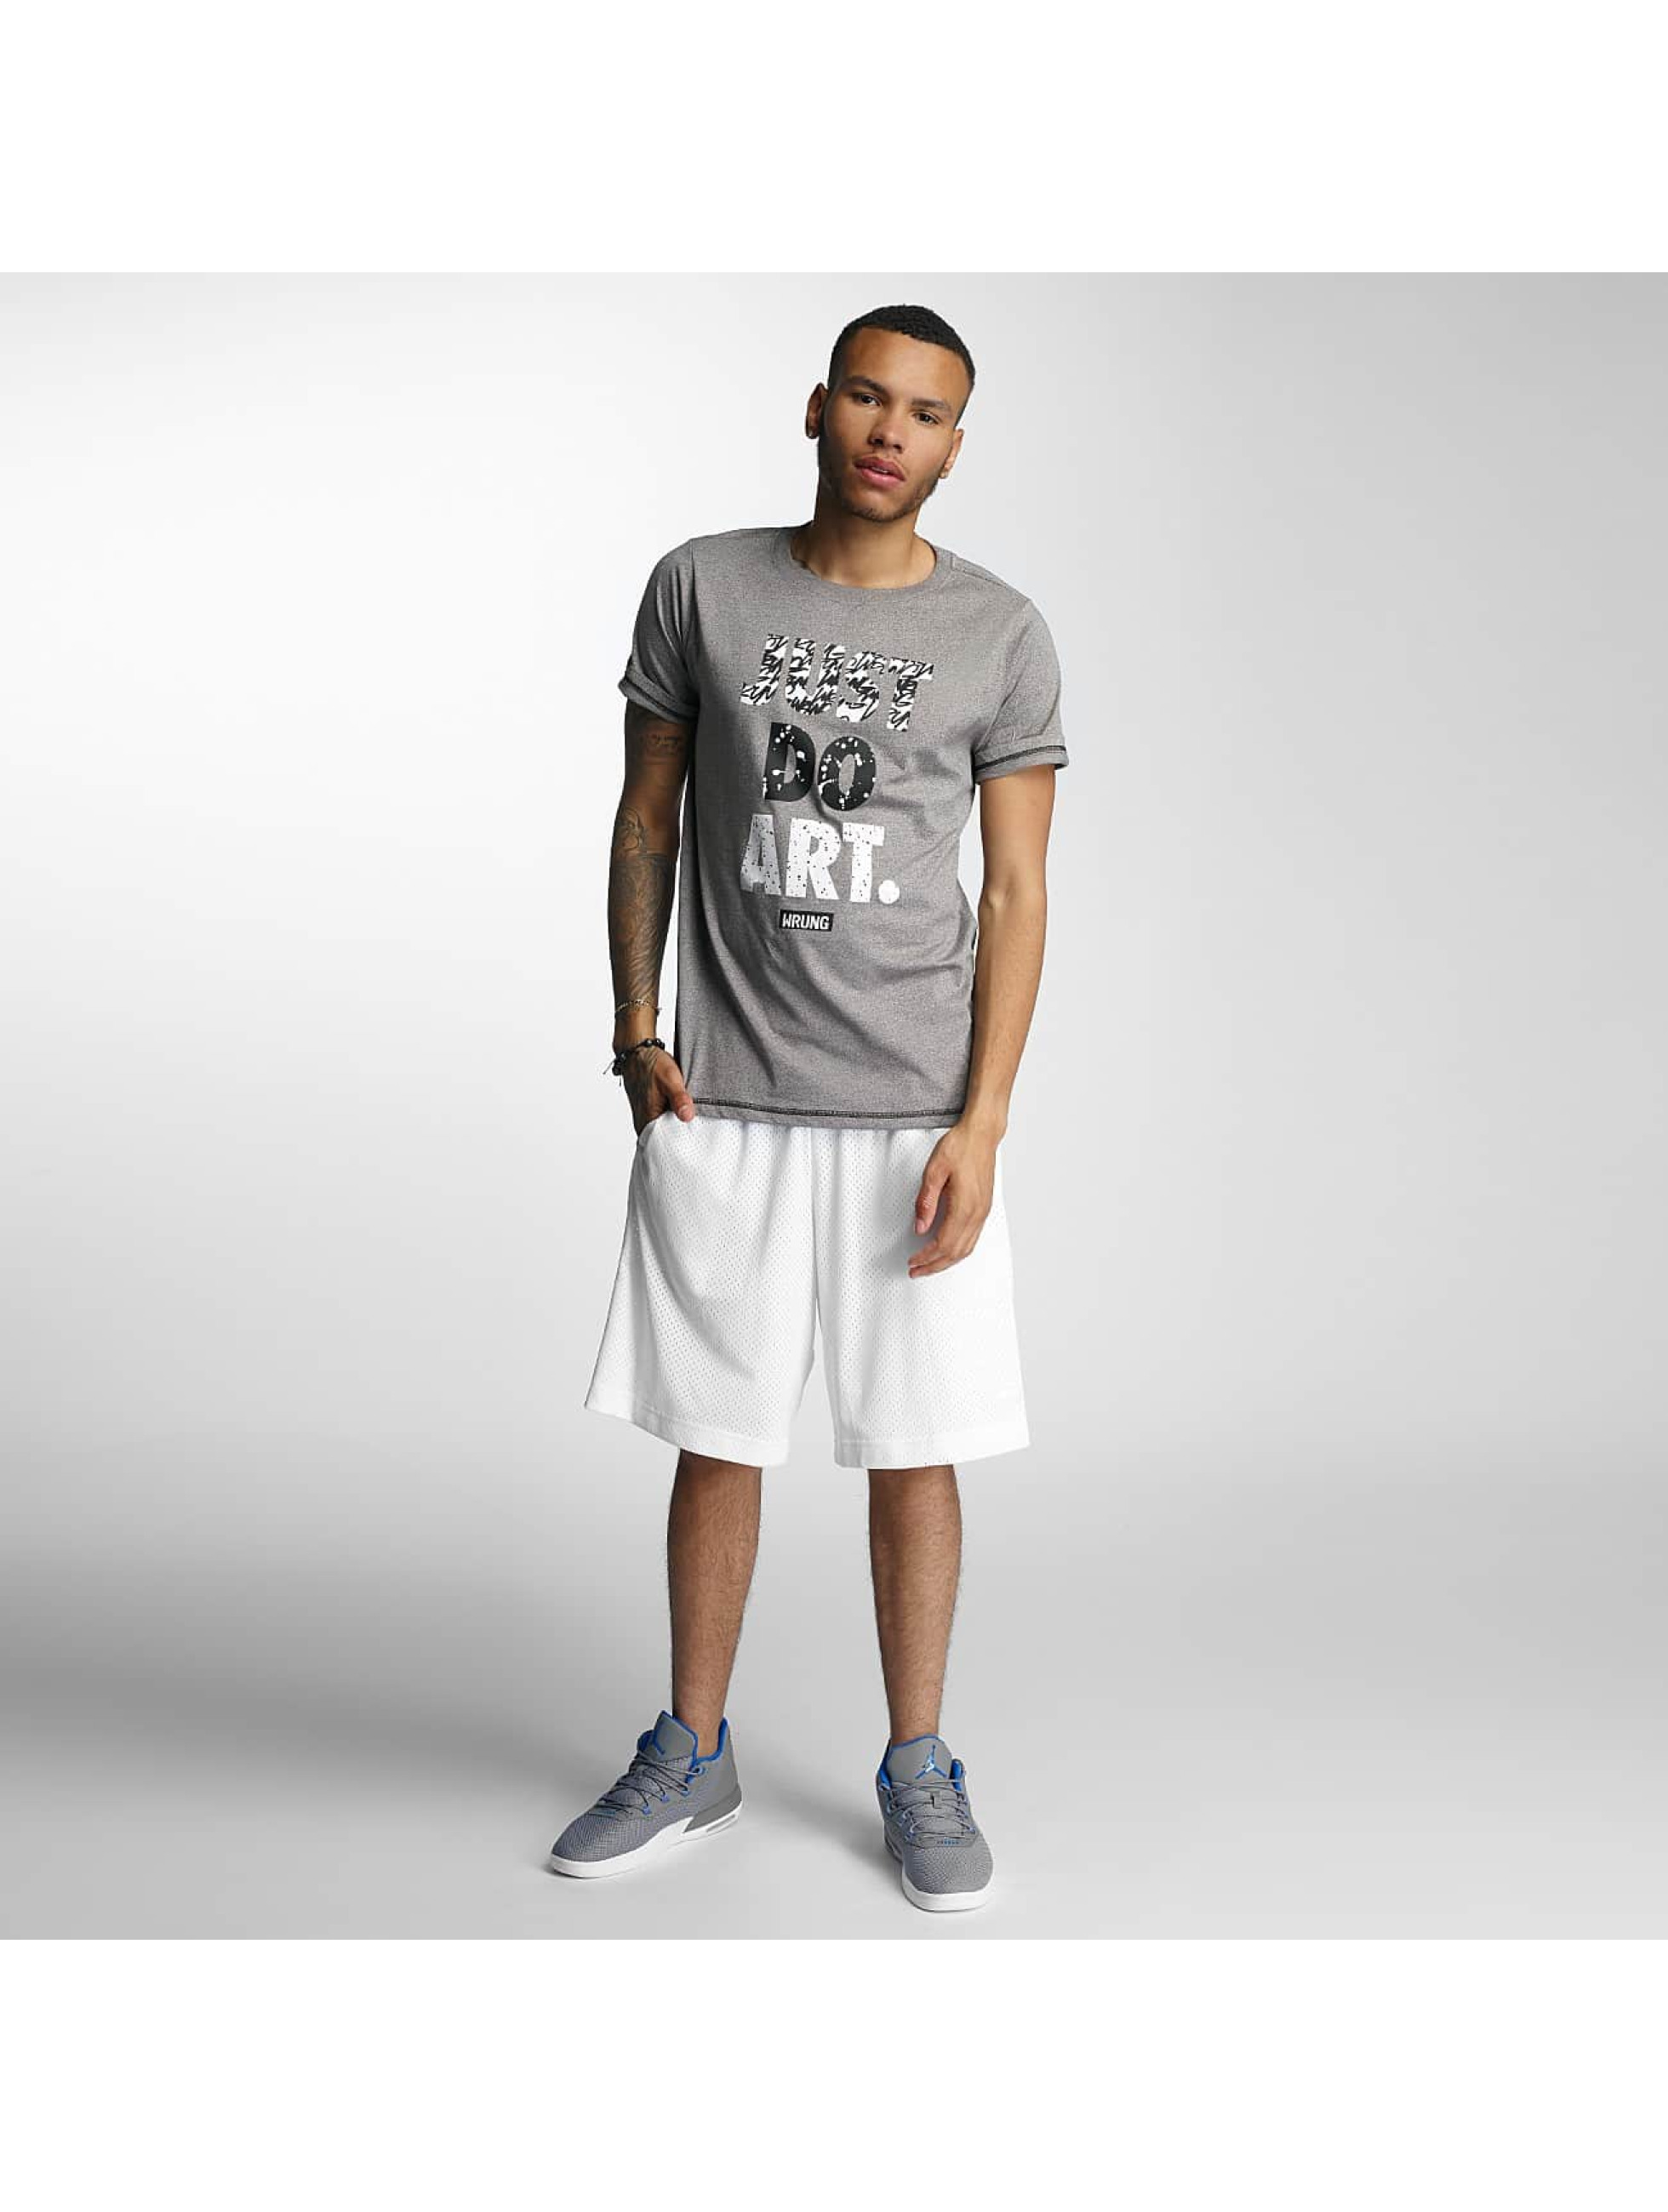 Wrung Division T-Shirt Just Do Art gray